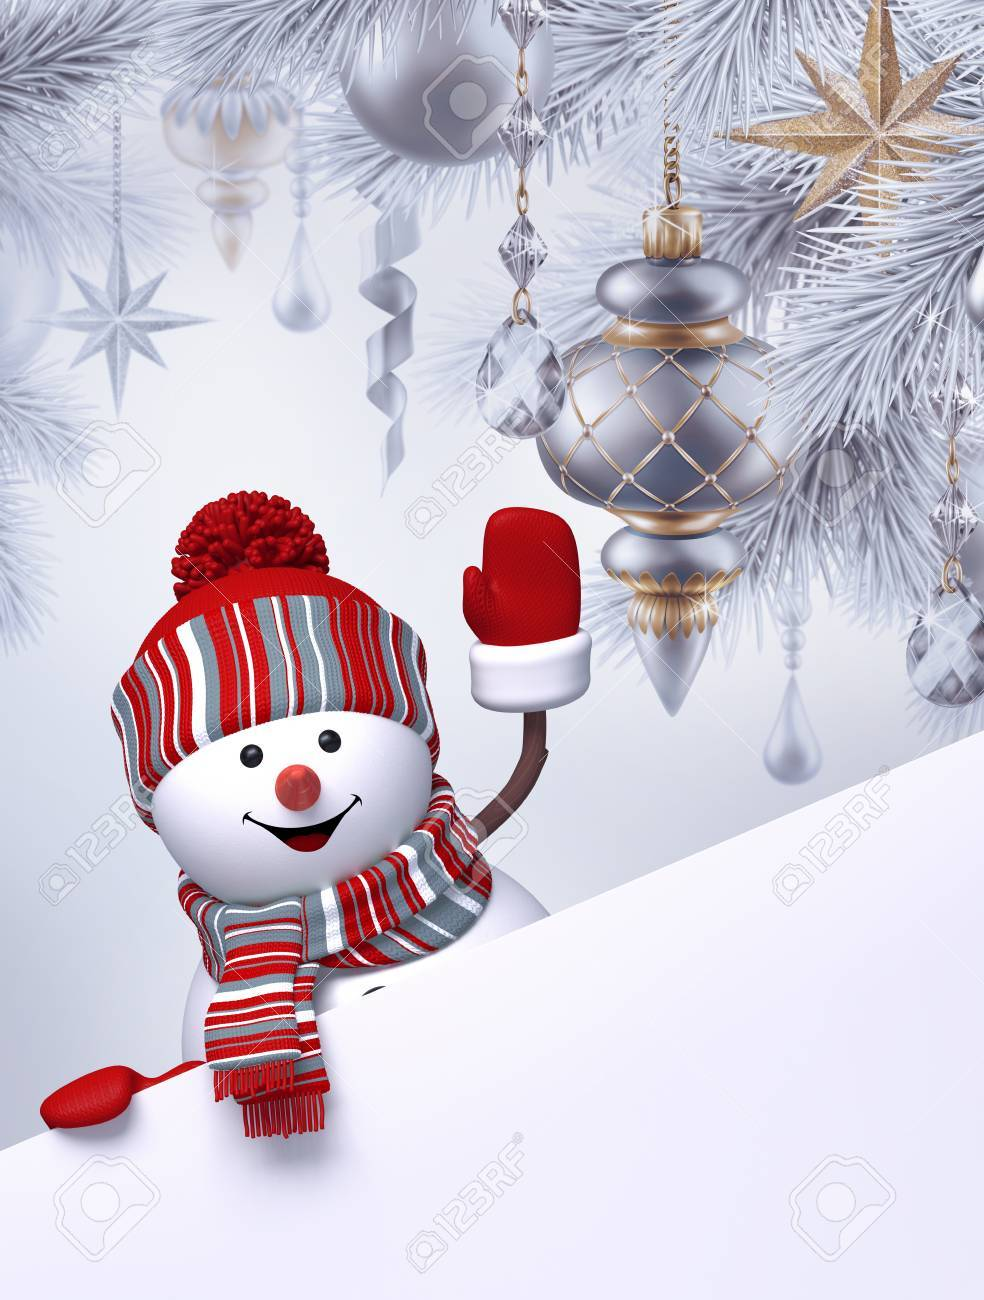 3d snowman christmas tree hanging ornaments greeting card template